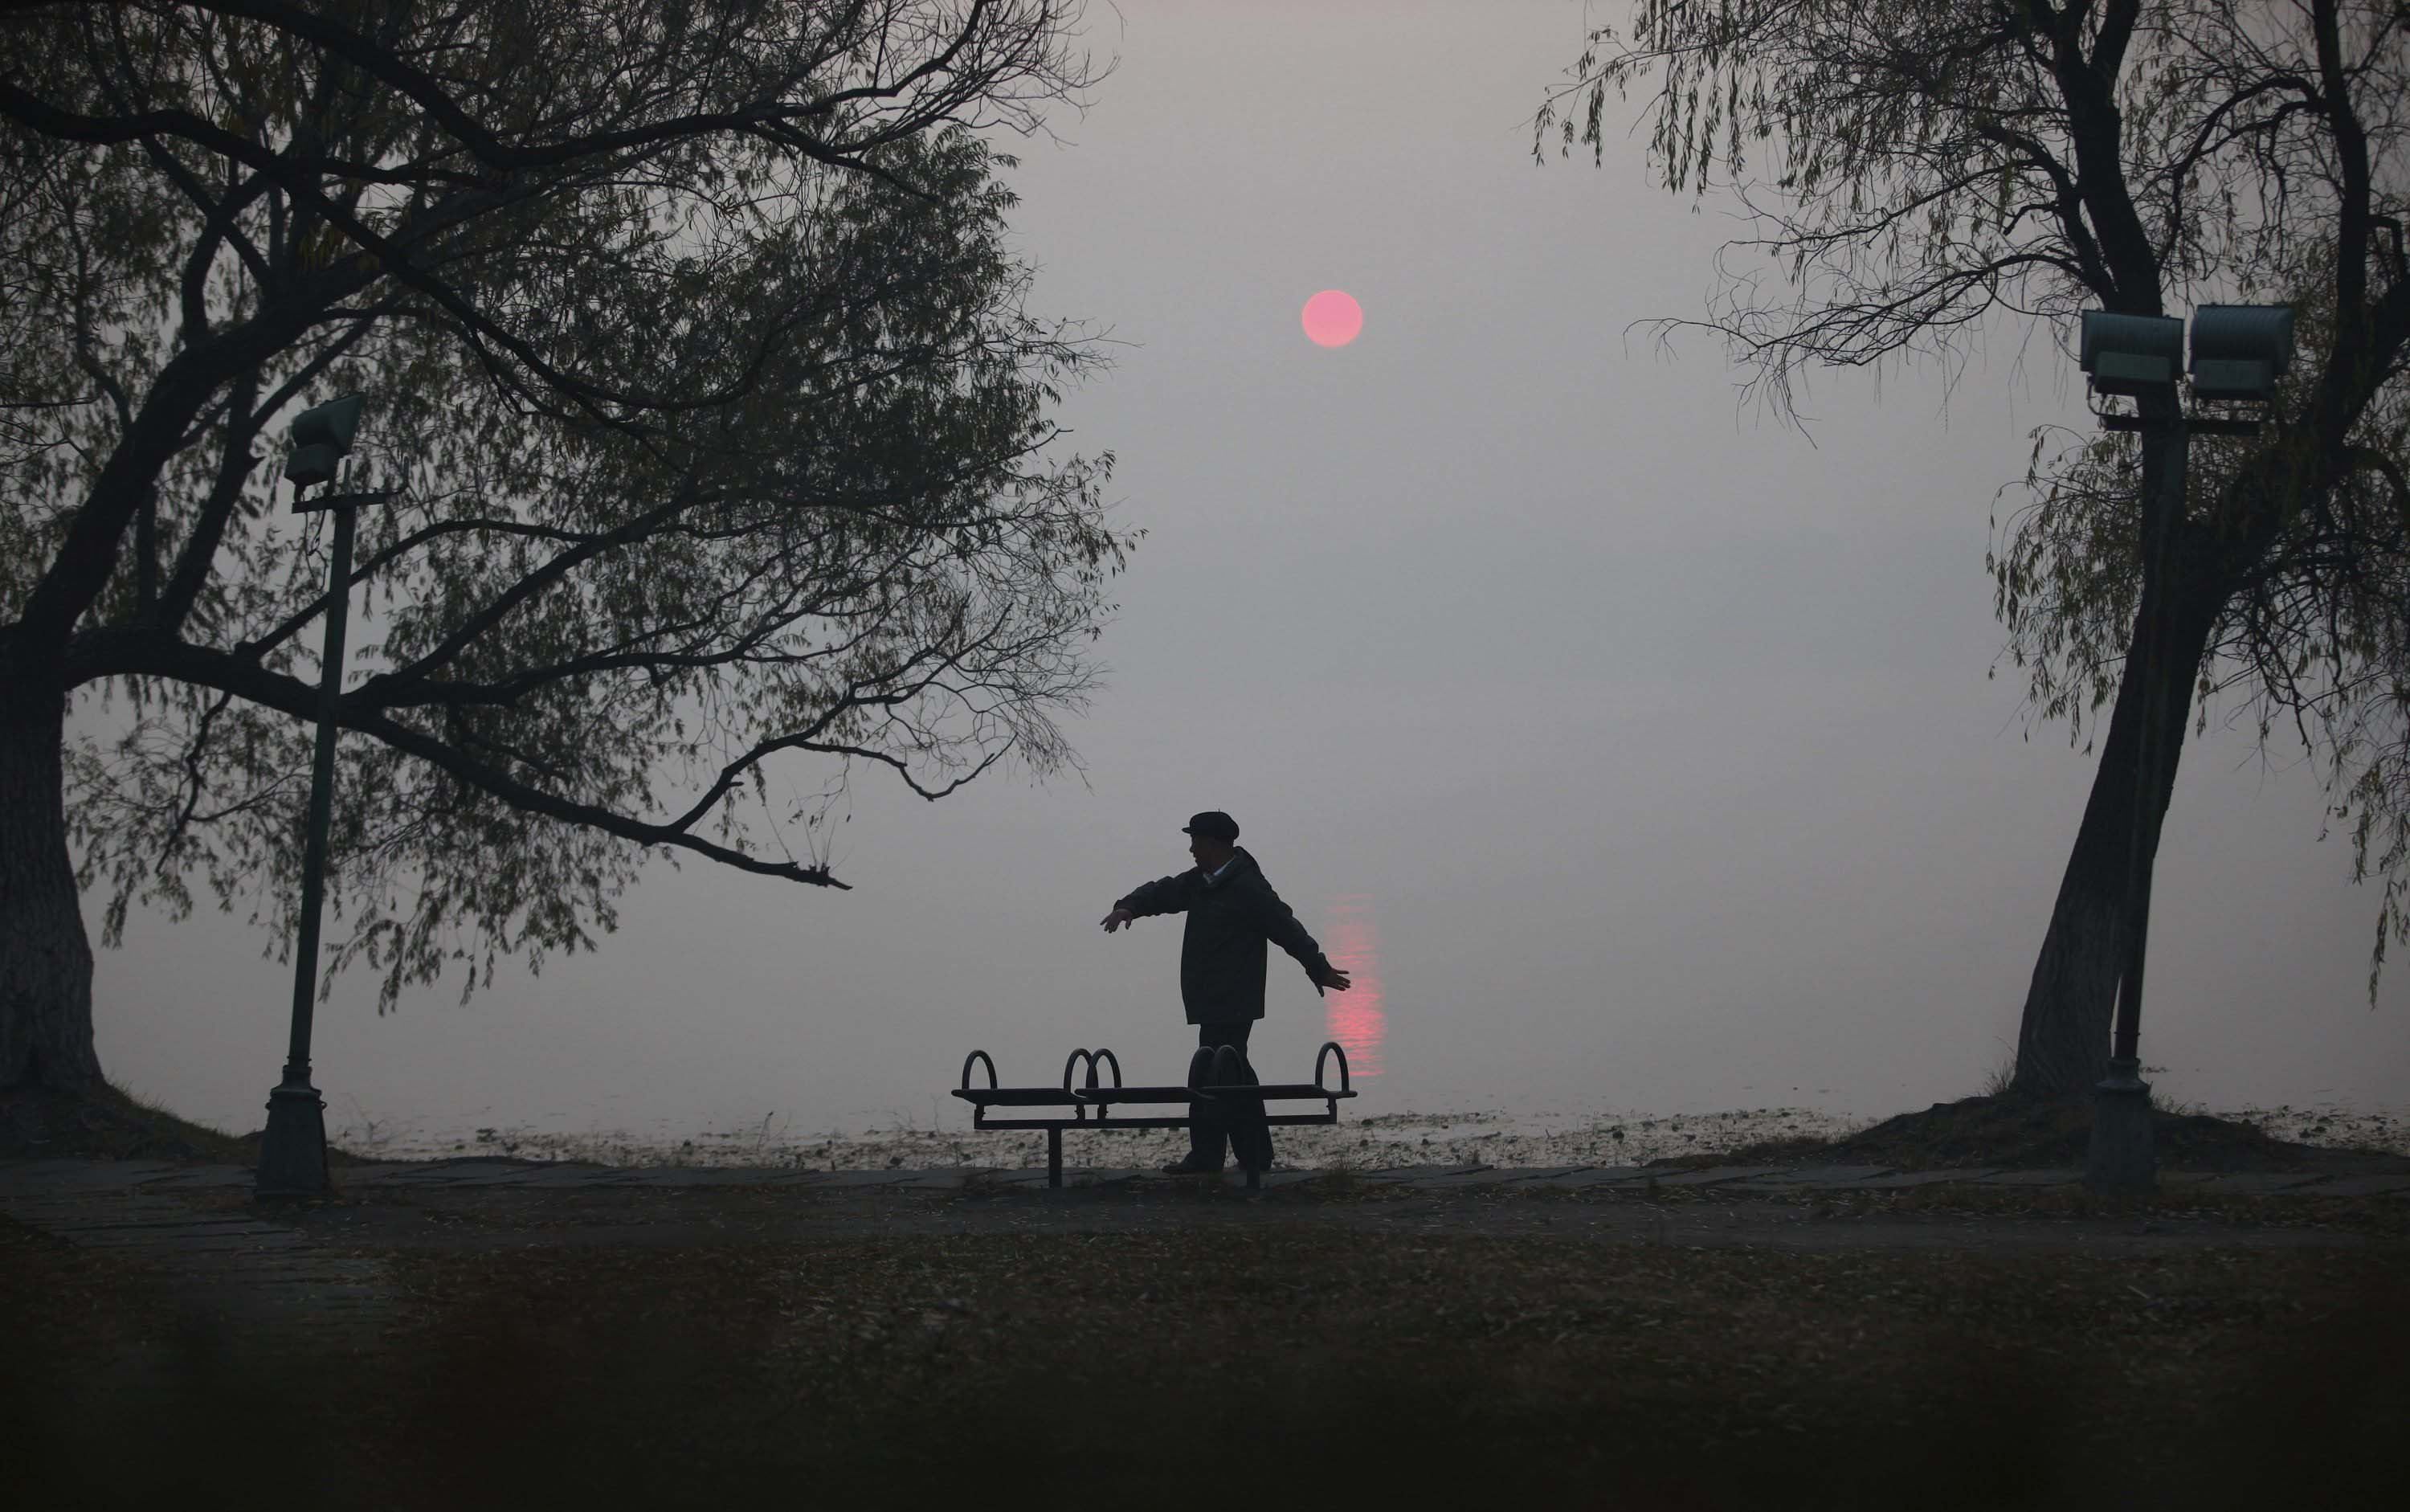 A man does his morning exercise on a polluted day by the side of a lake at Nanhu Park in Changchun, Jilin province, China on Oct. 22, 2014.